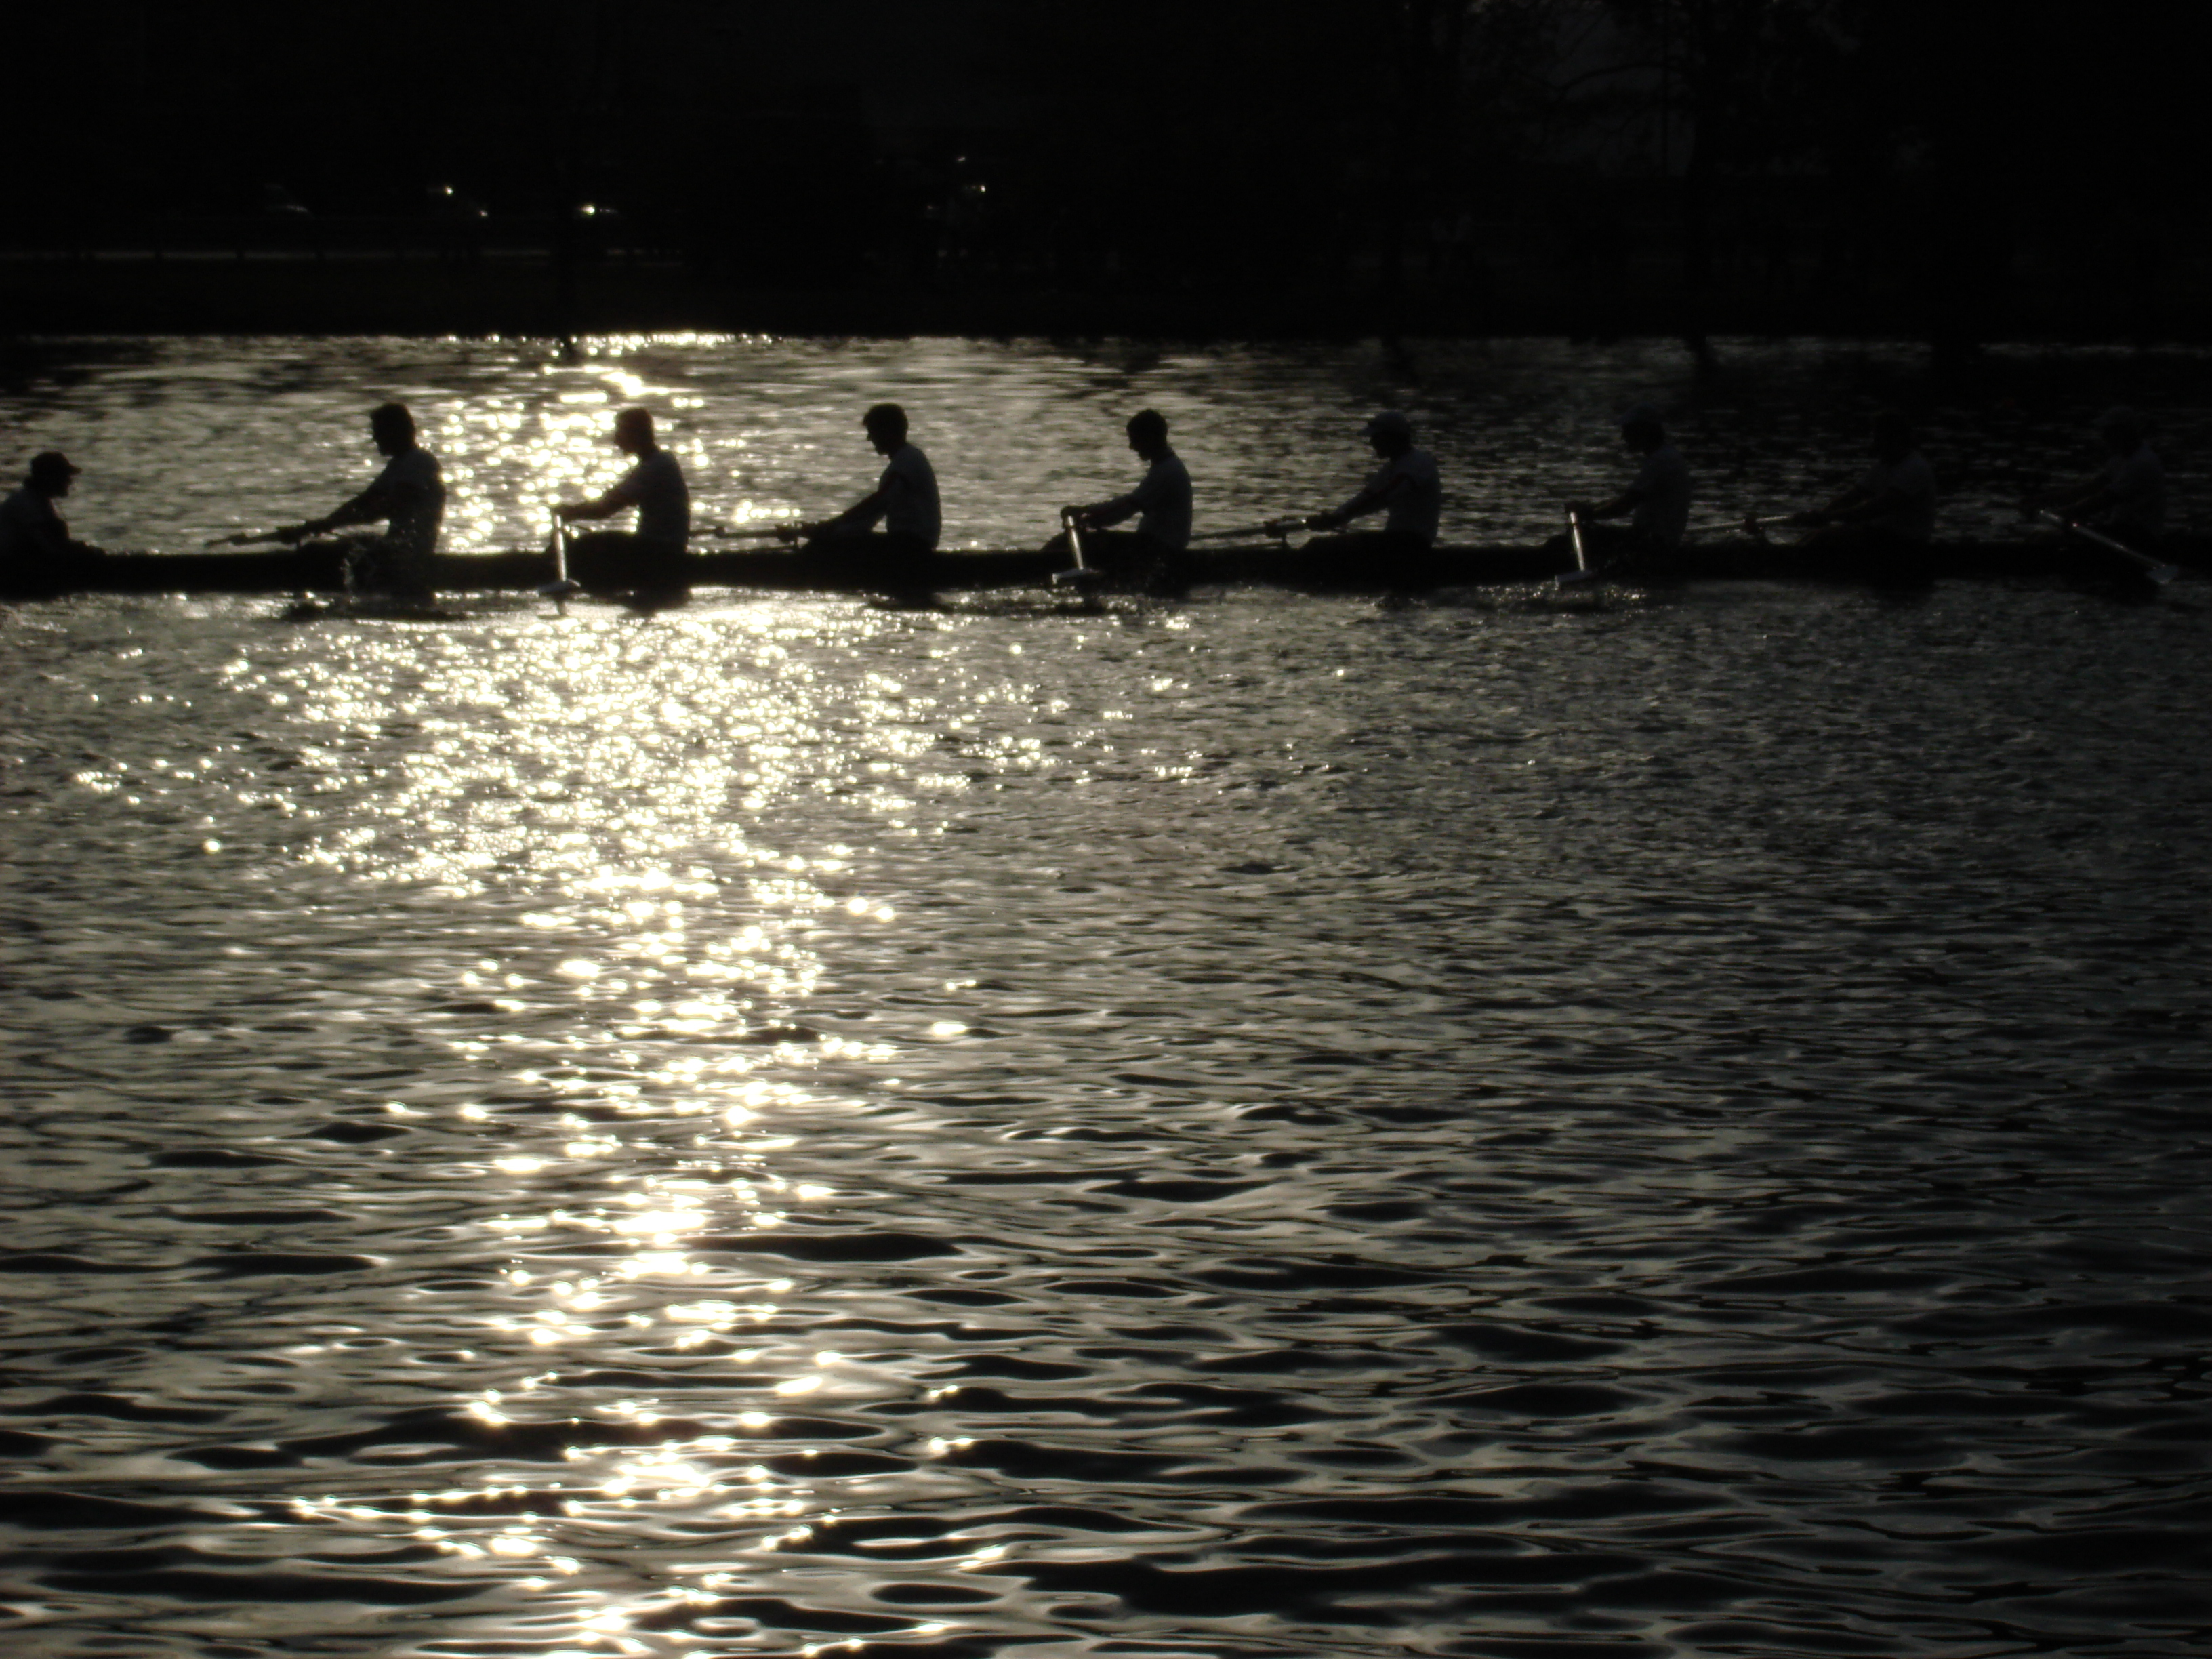 The world's best rowers are coming to the Charles this weekend.